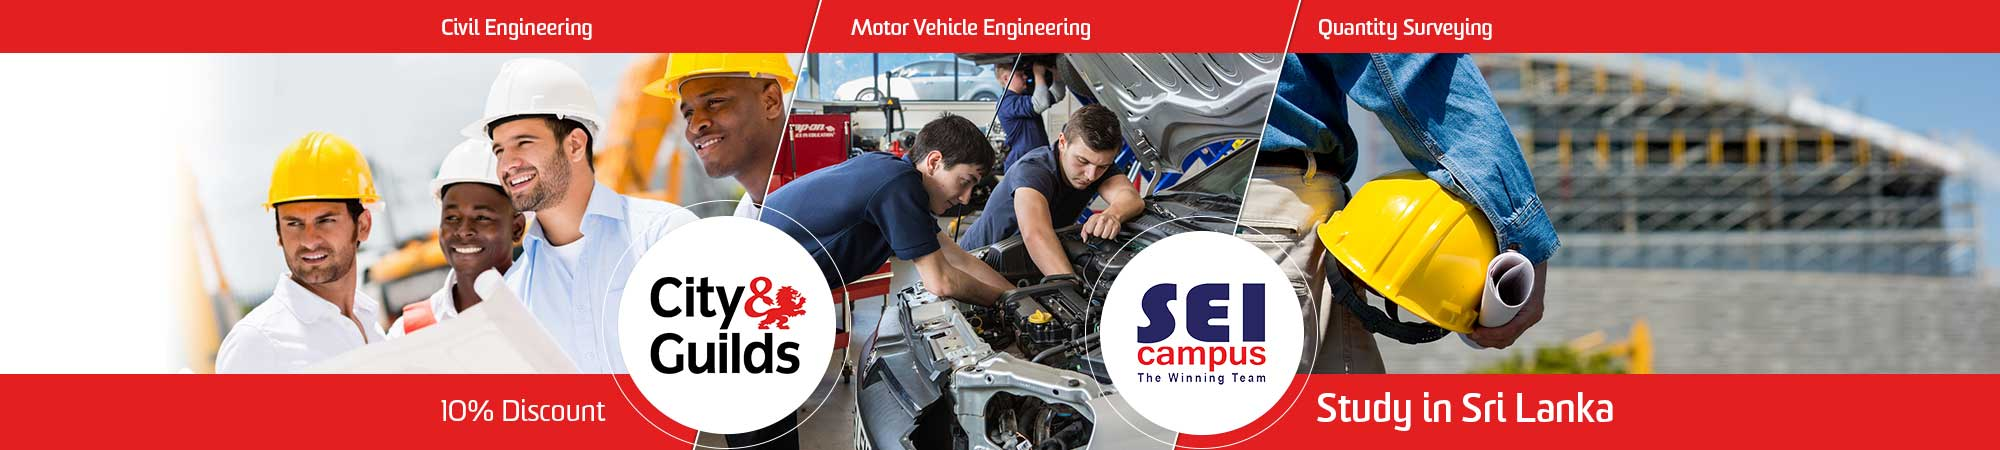 City and Guilds Courses at SEI Campus, Sri Lanka